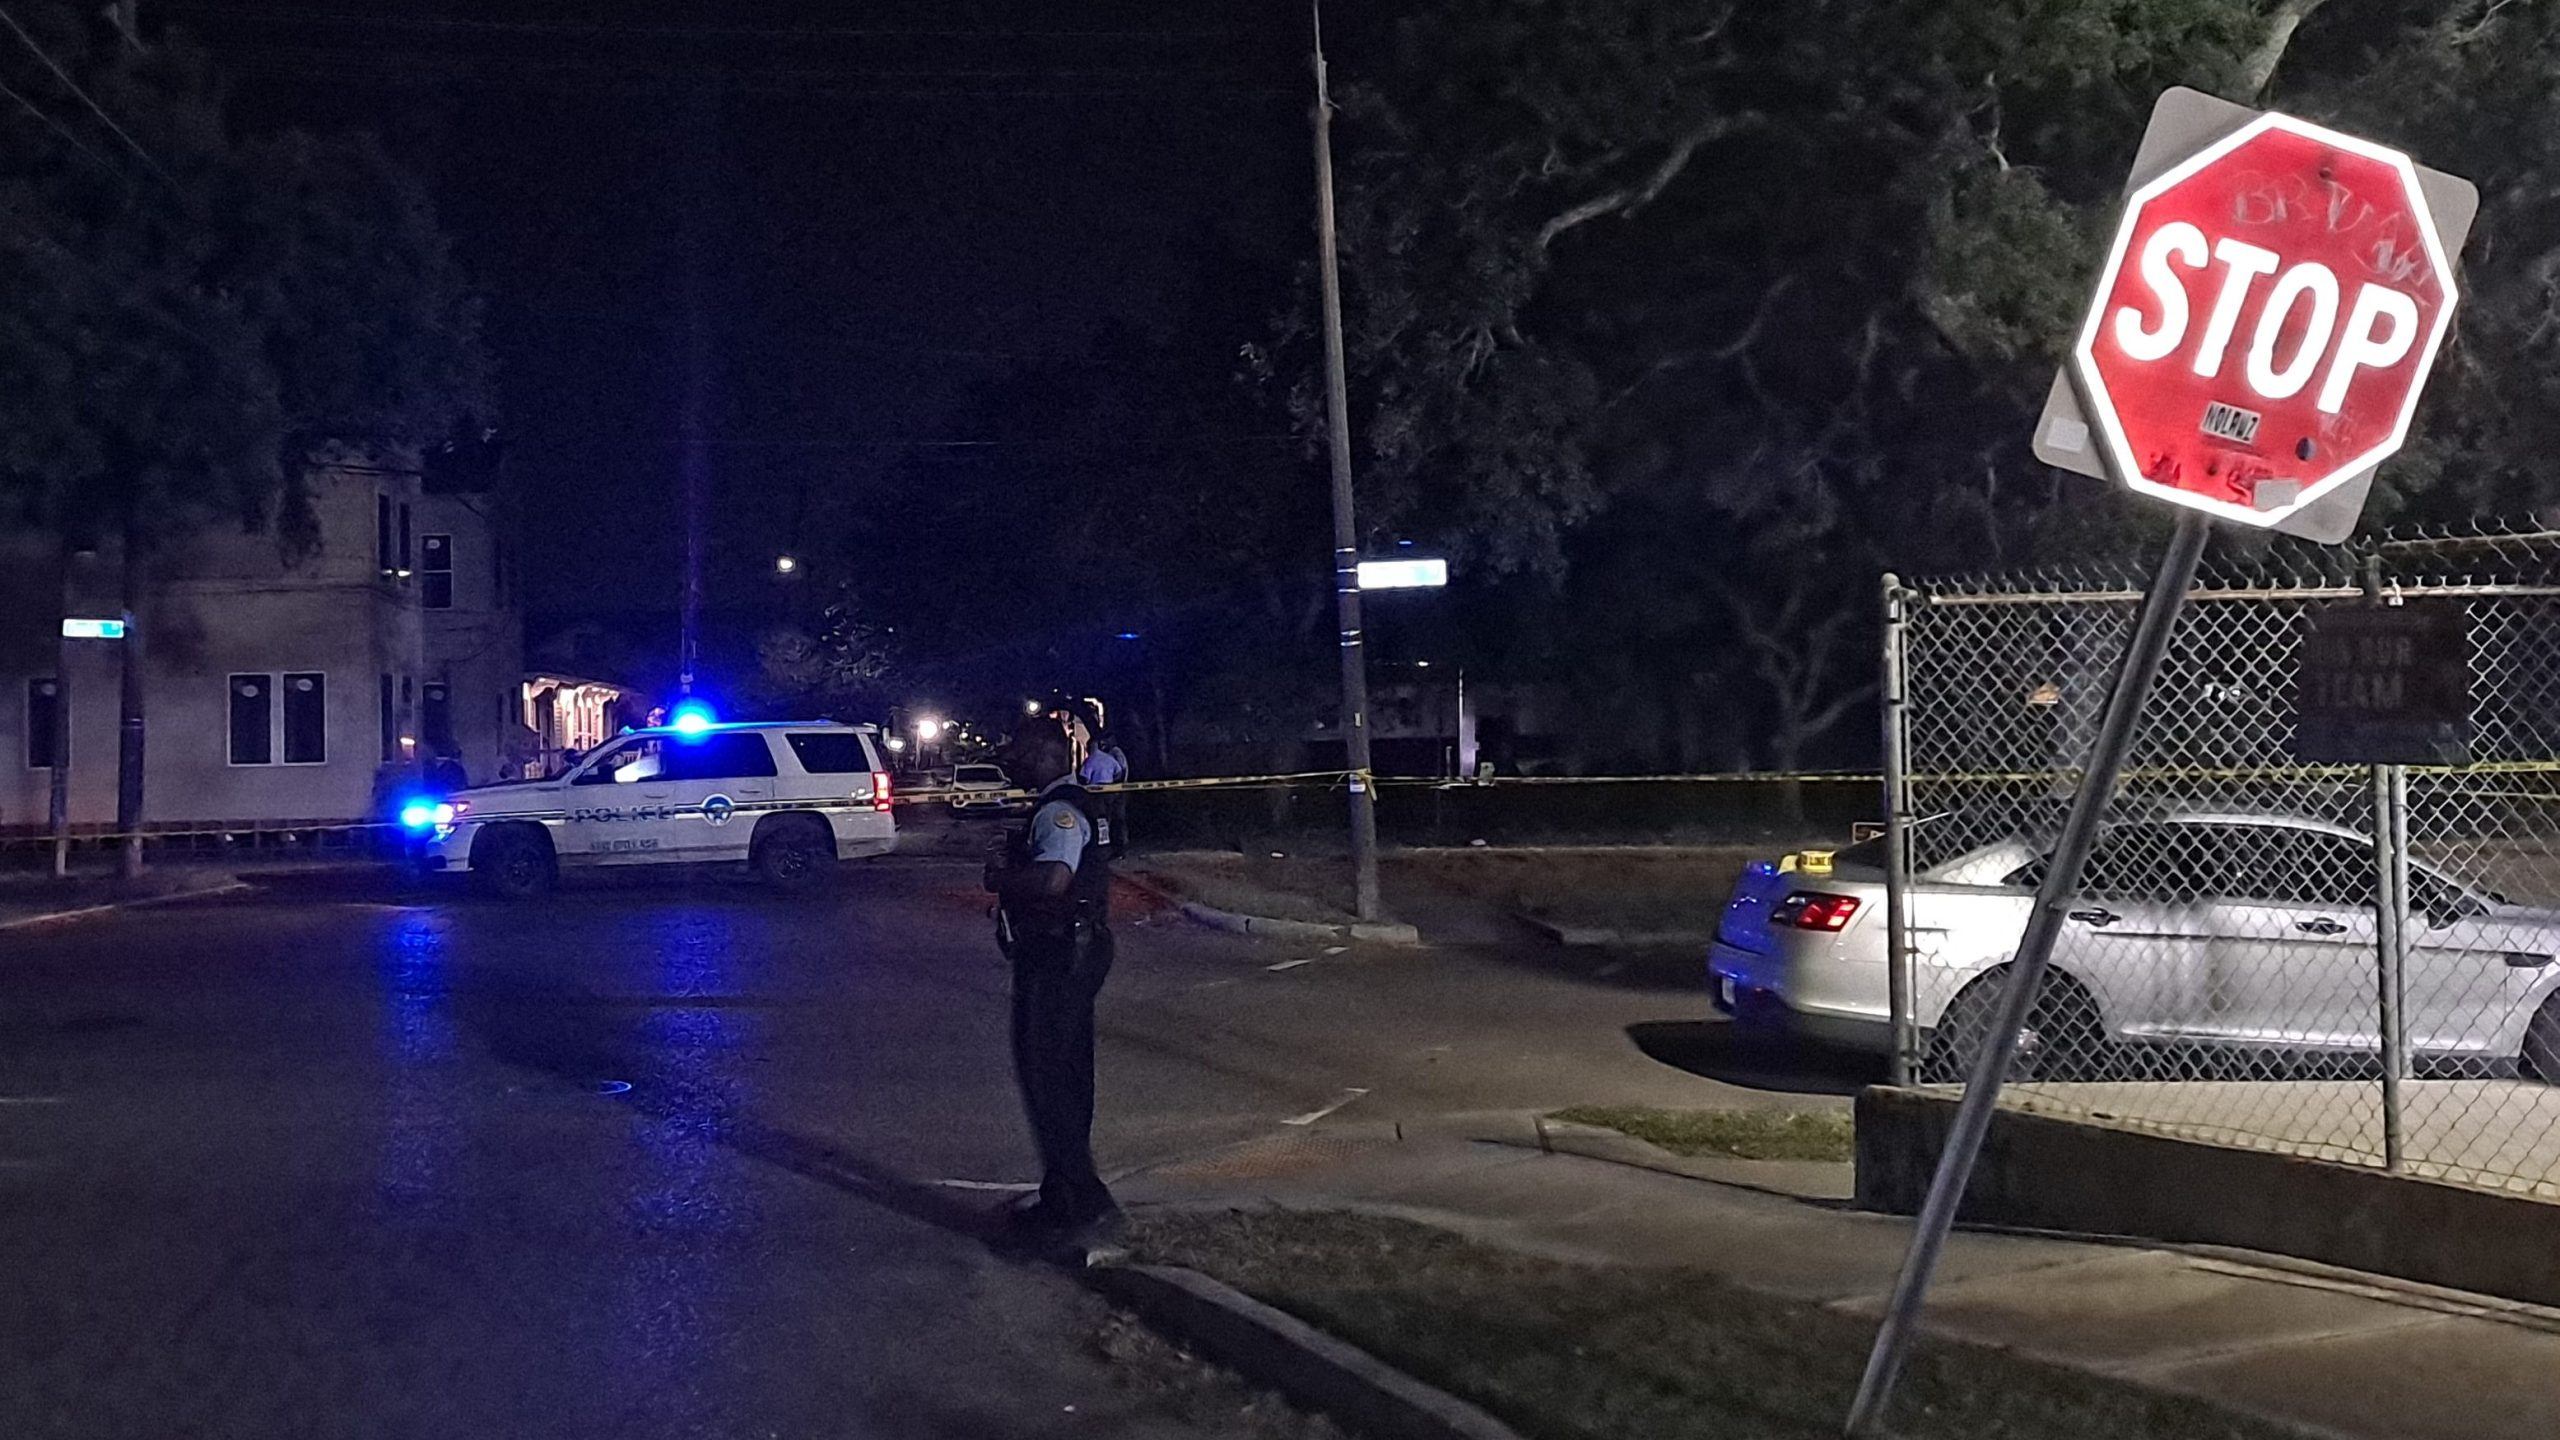 https://wgno.com/news/crime/one-dead-another-hospitalized-in-violent-st-roch-shooting-nopd-reports